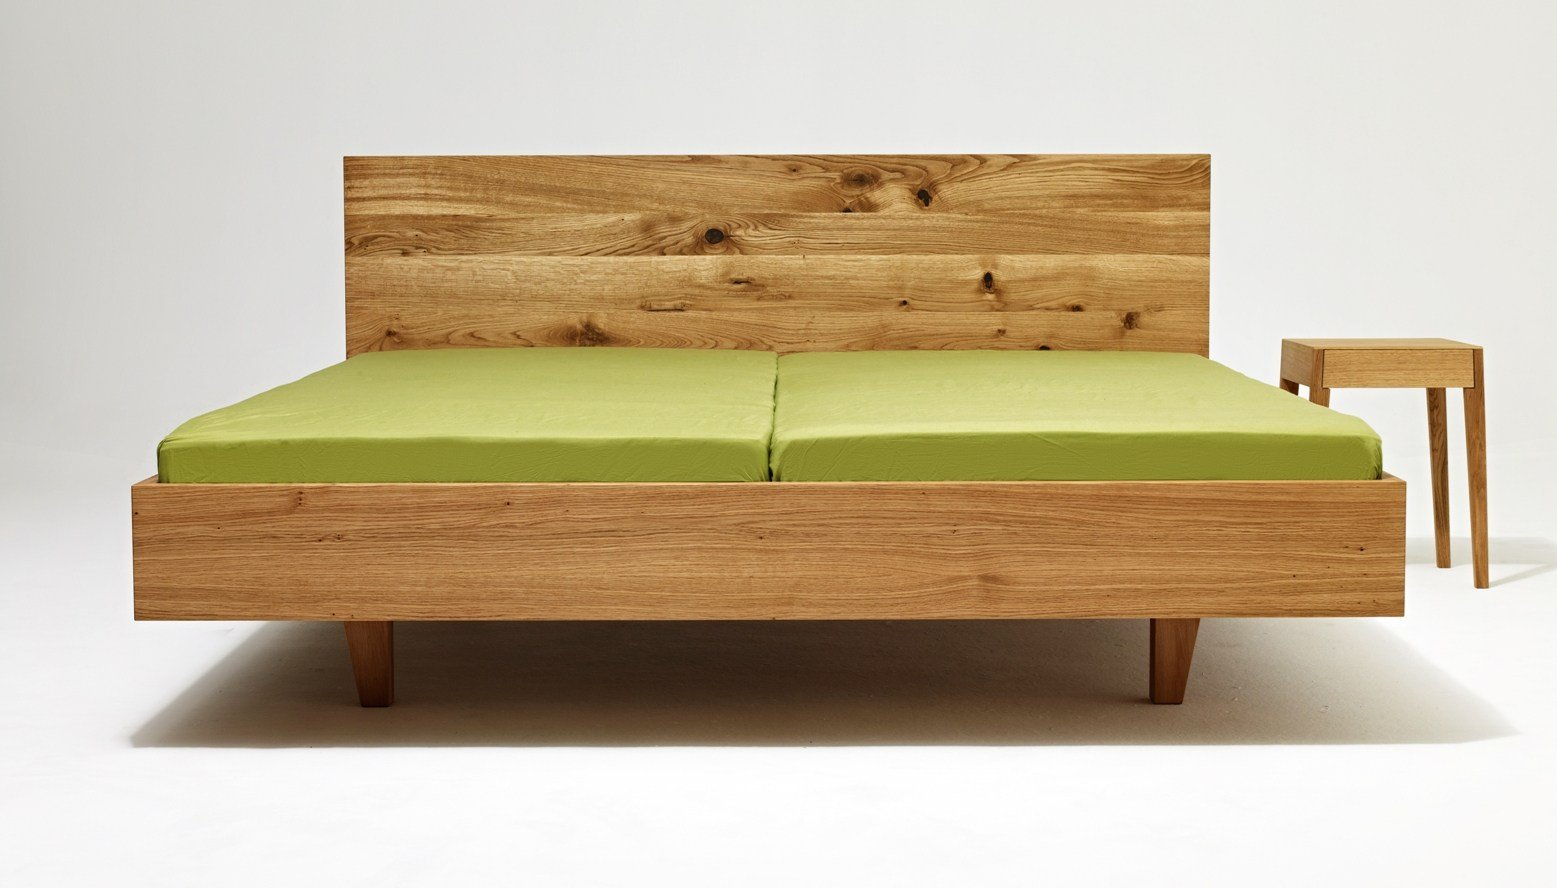 Mamma Wooden Bed By Sixay Furniture Design Laszlo Szikszai